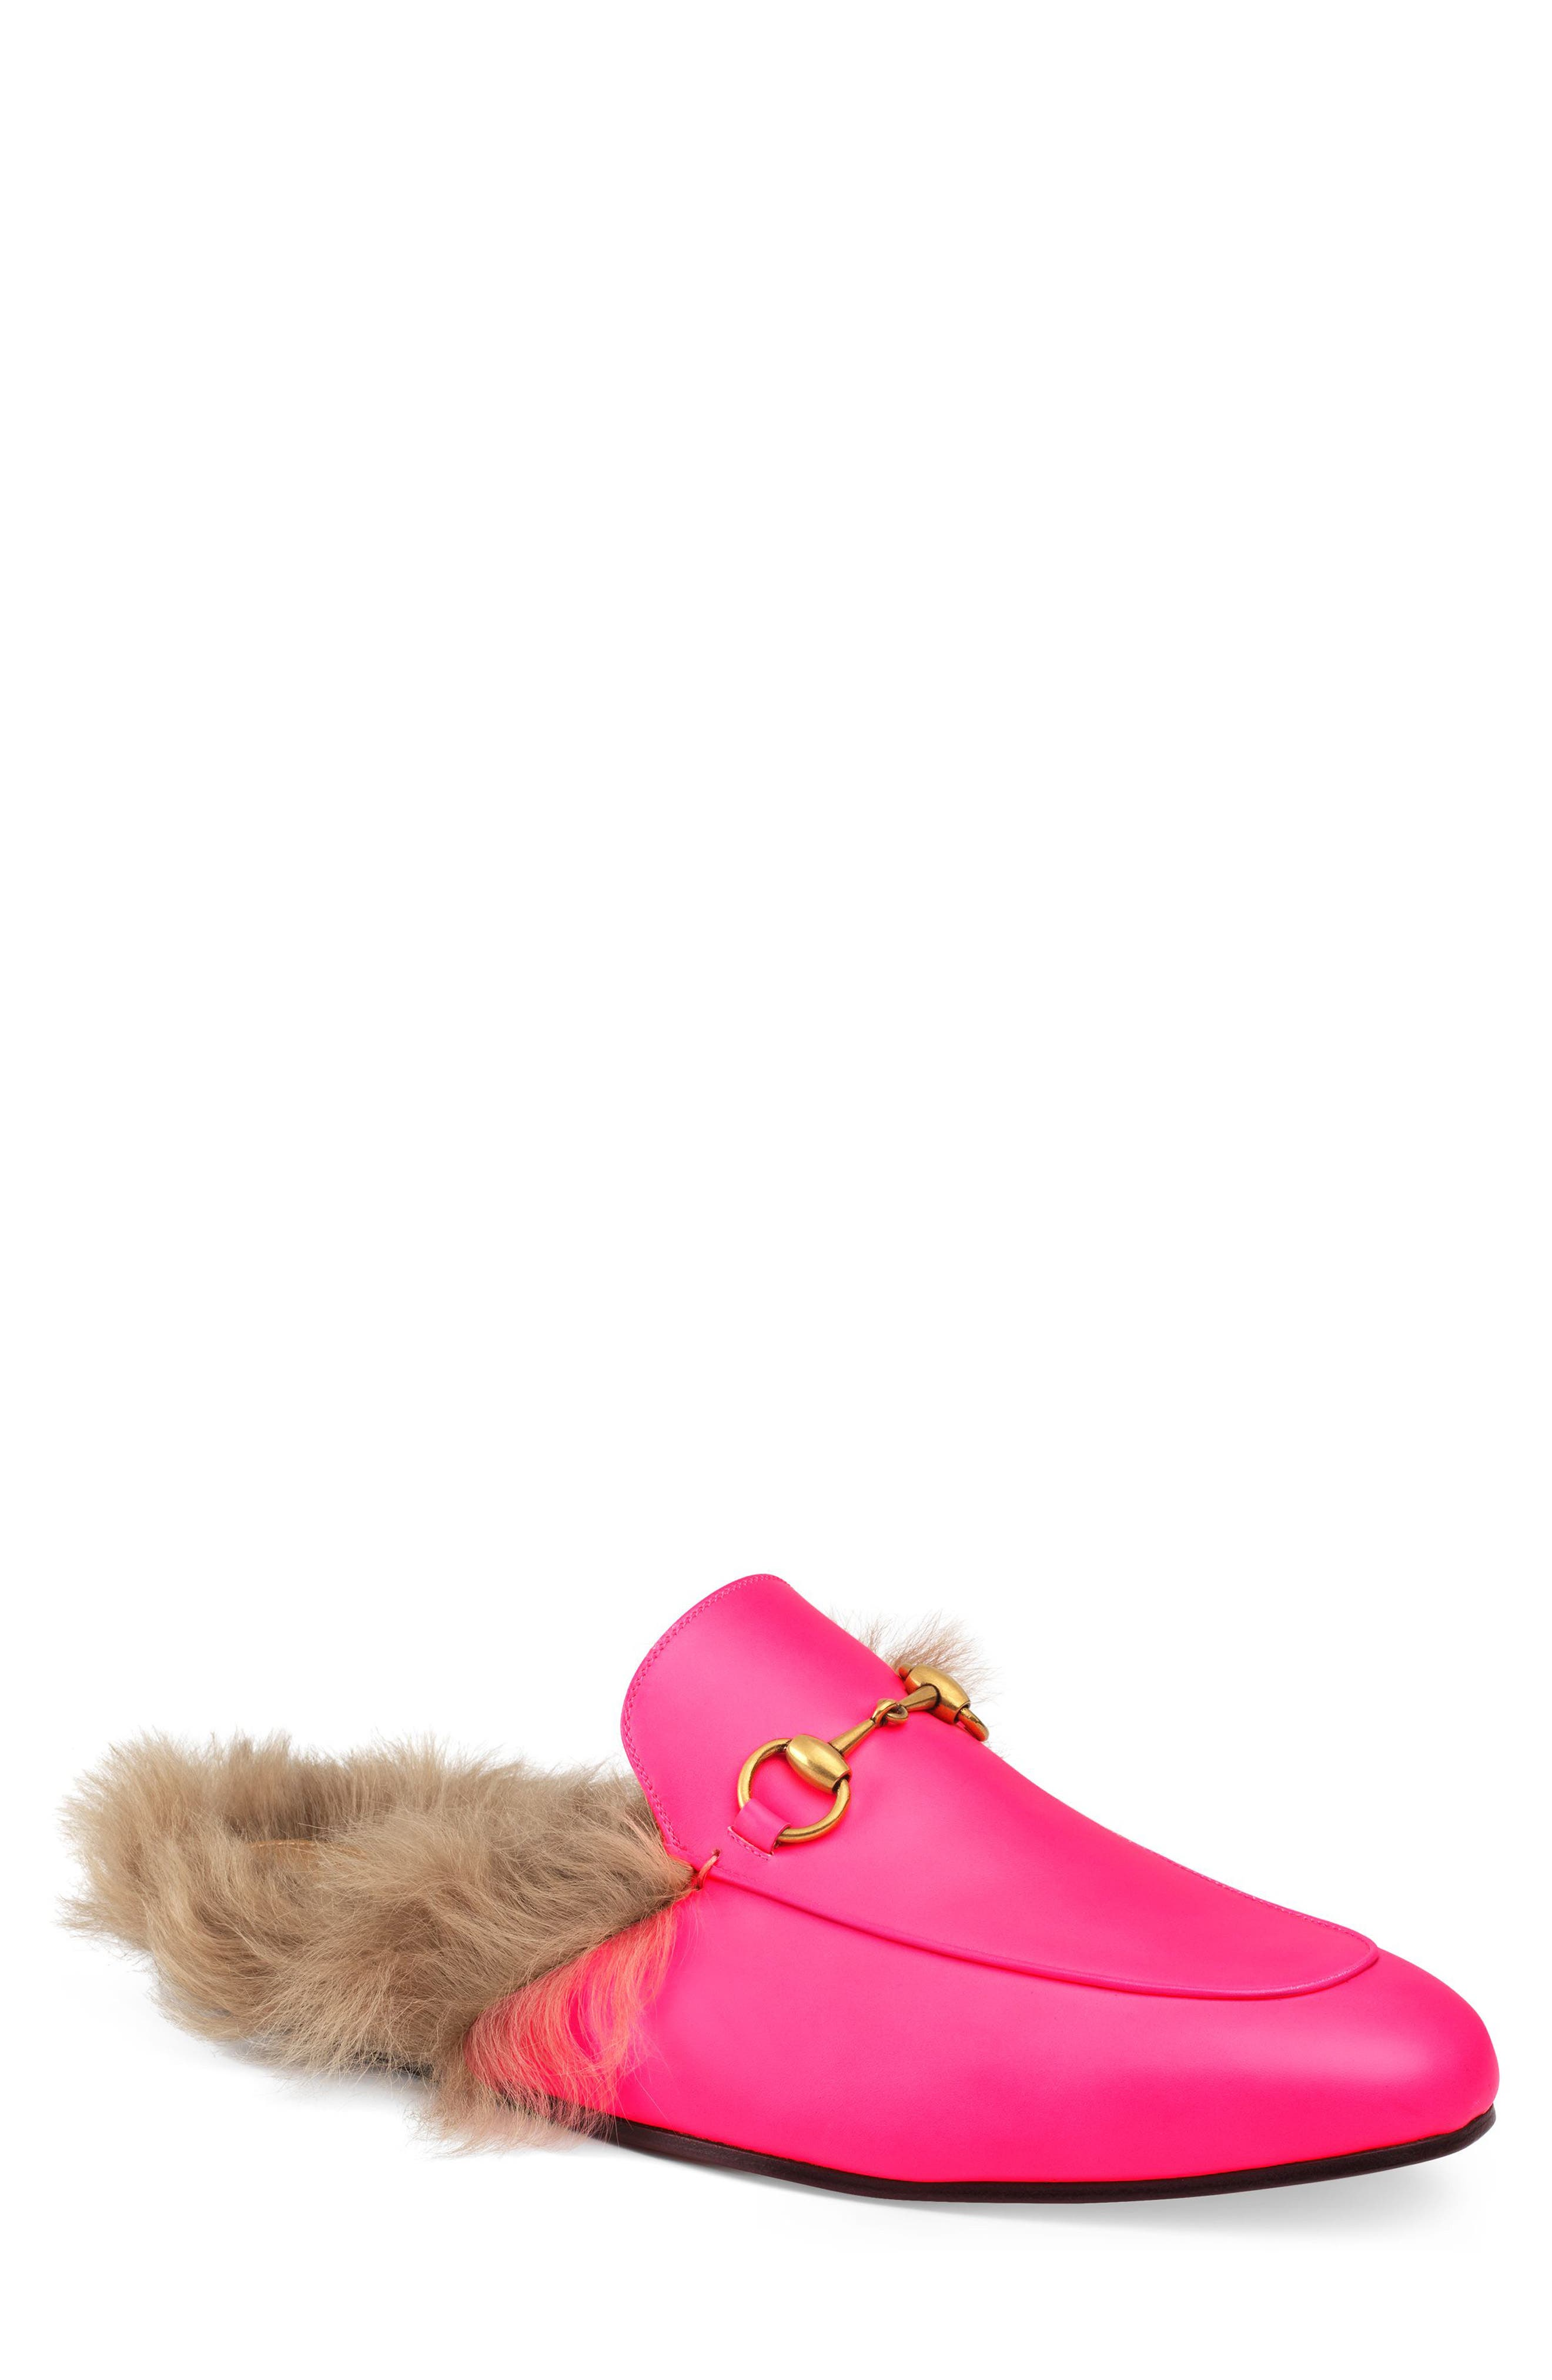 GUCCI Princetown Genuine Shearling Lined Mule Loafer, Main, color, PINK/ PINK